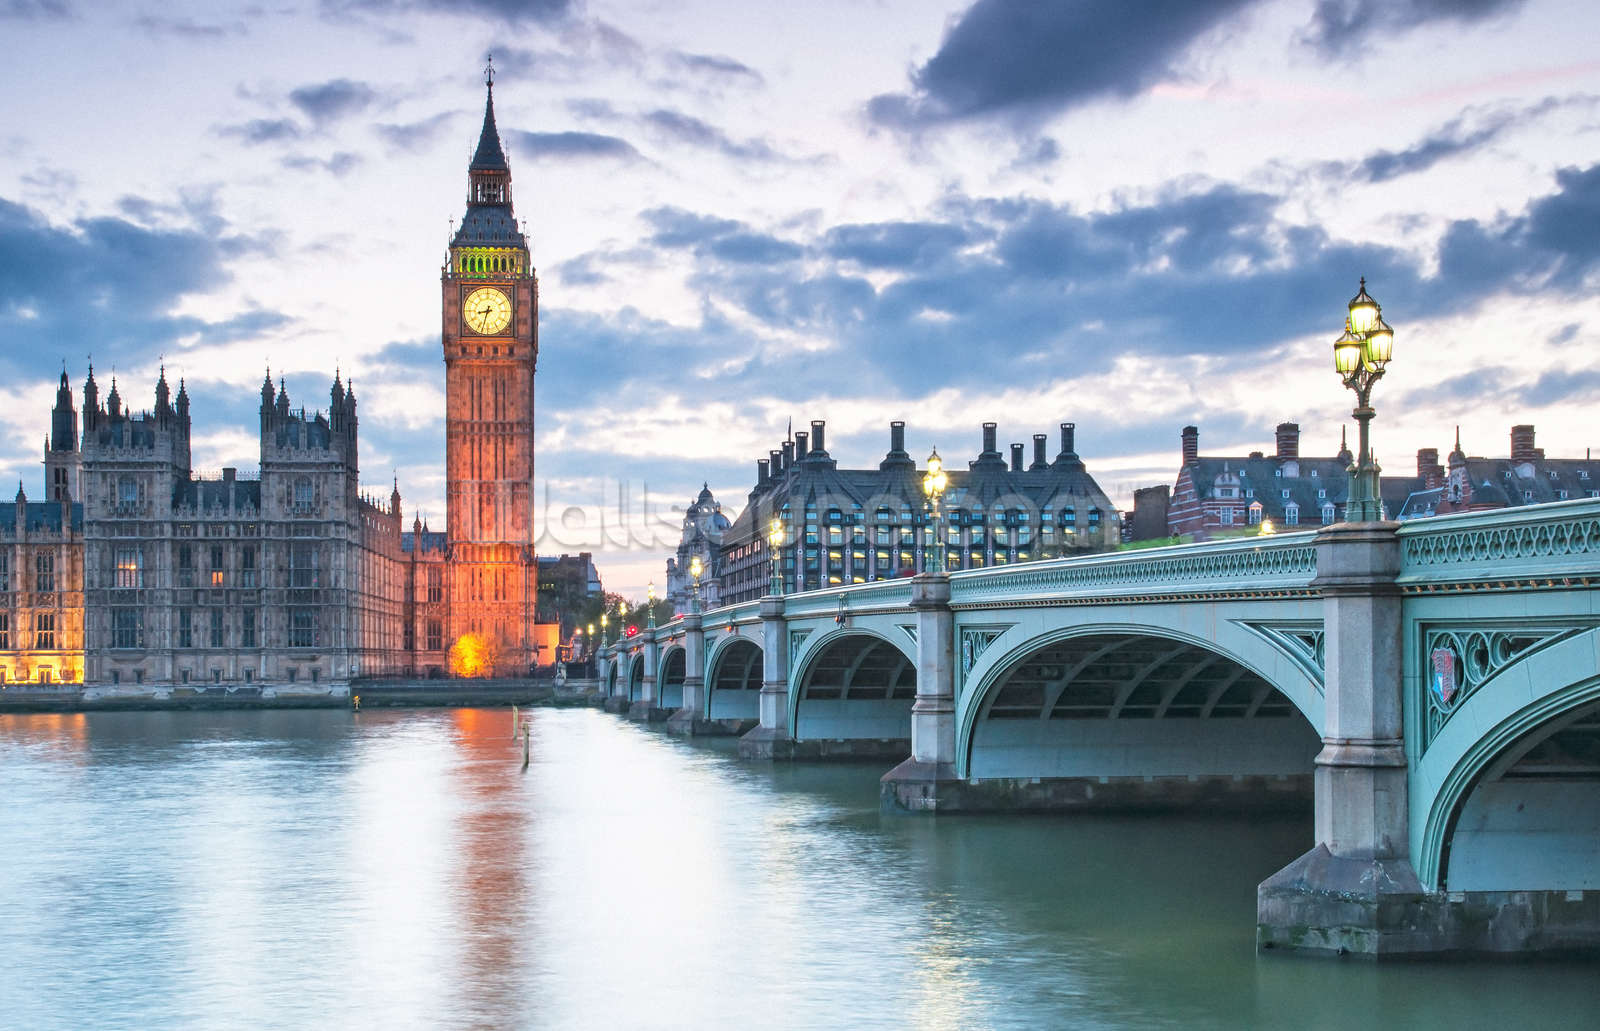 London westminster at dusk wallpaper wall mural wallsauce usa london westminster at dusk wall mural photo wallpaper amipublicfo Choice Image